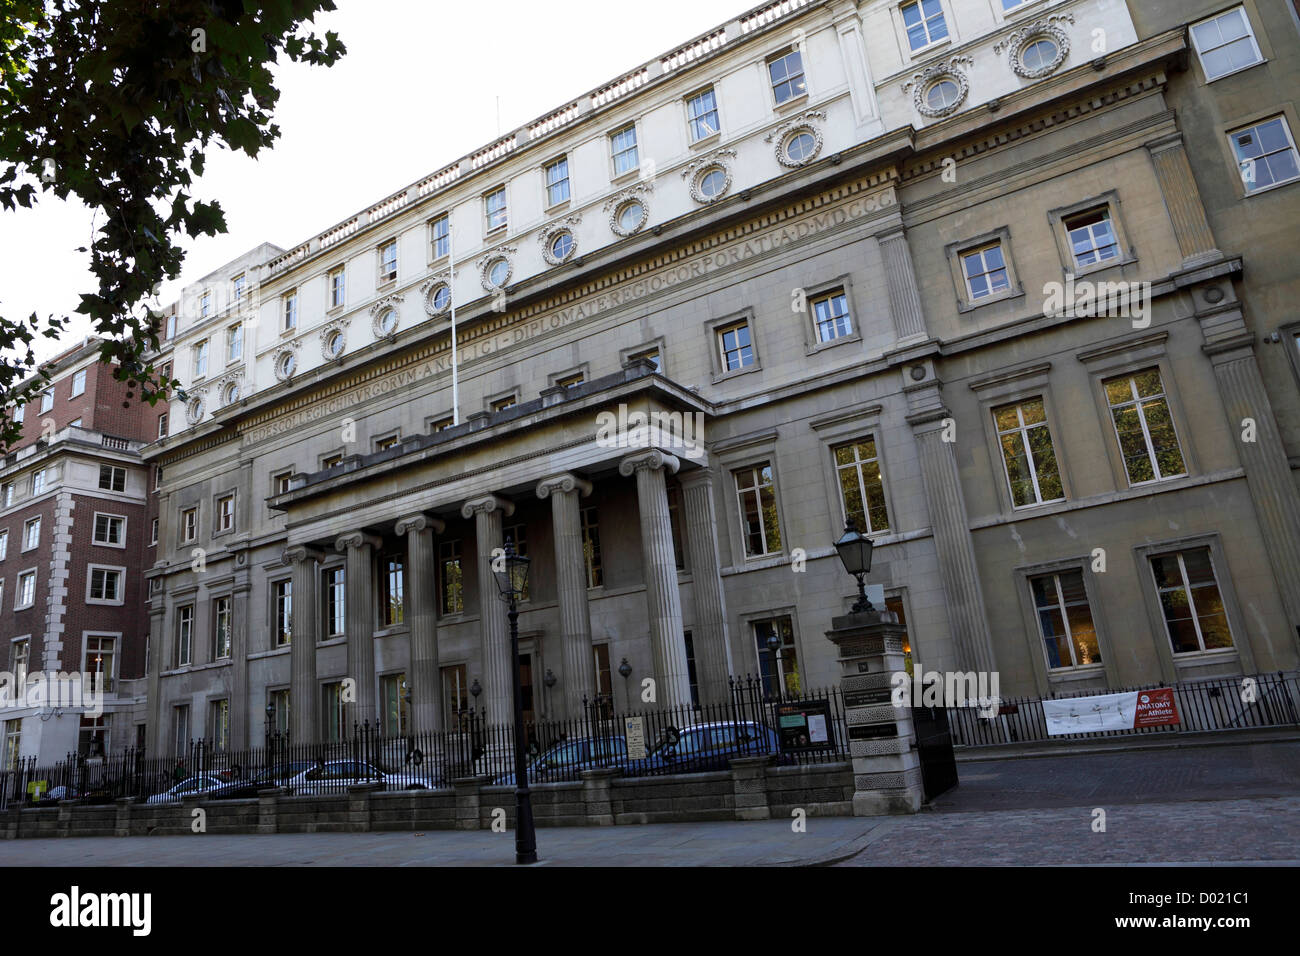 The Royal College of Surgeons of England,situated in Lincoln`s Inn Fields. - Stock Image